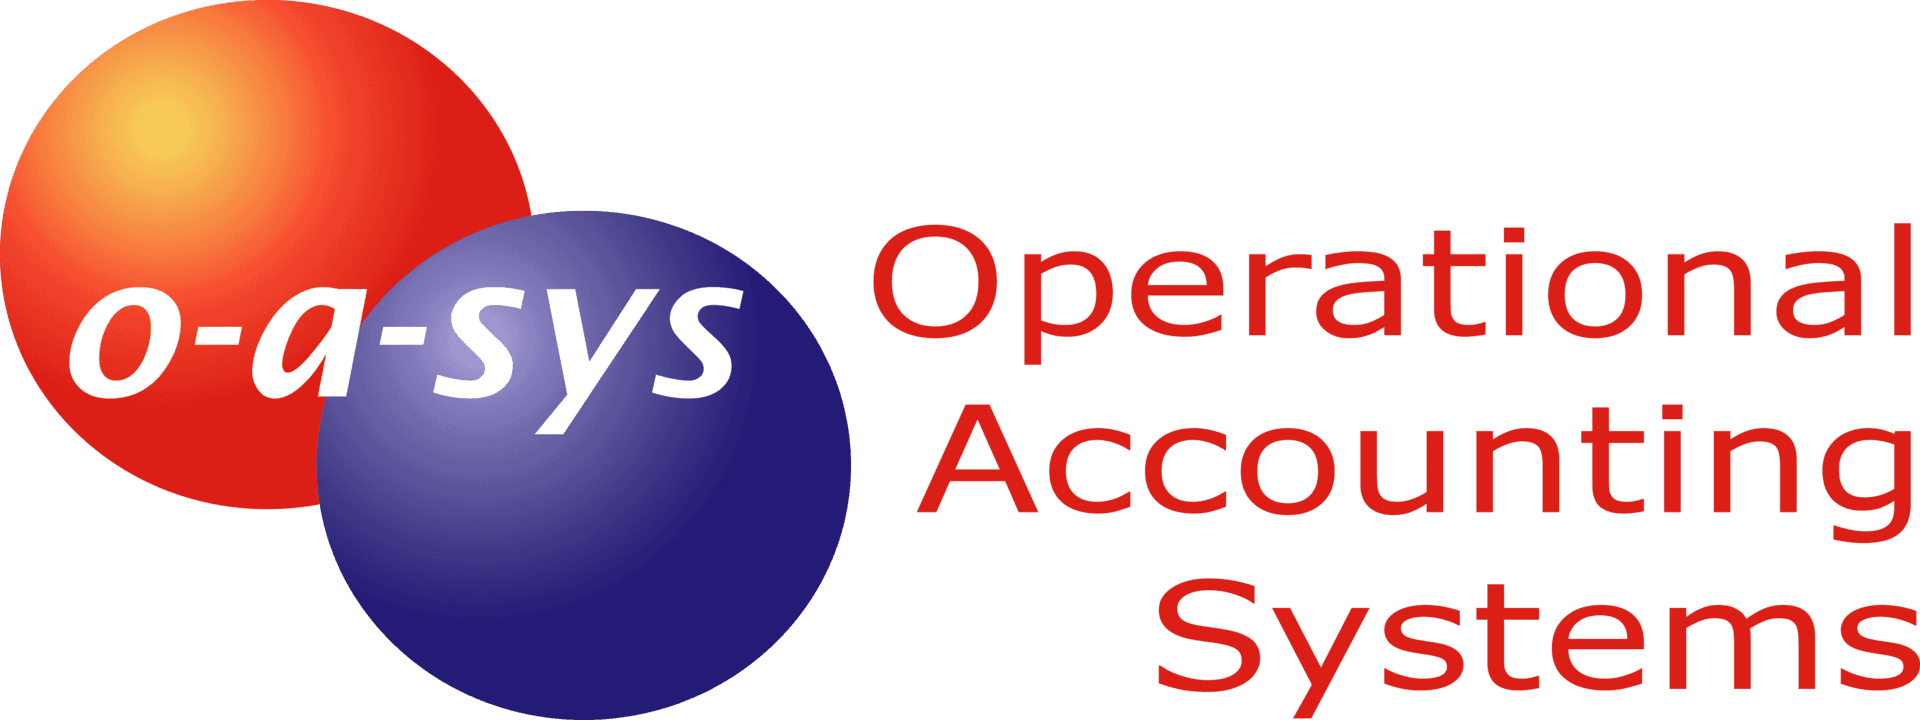 Operational Accounting Systems Logo